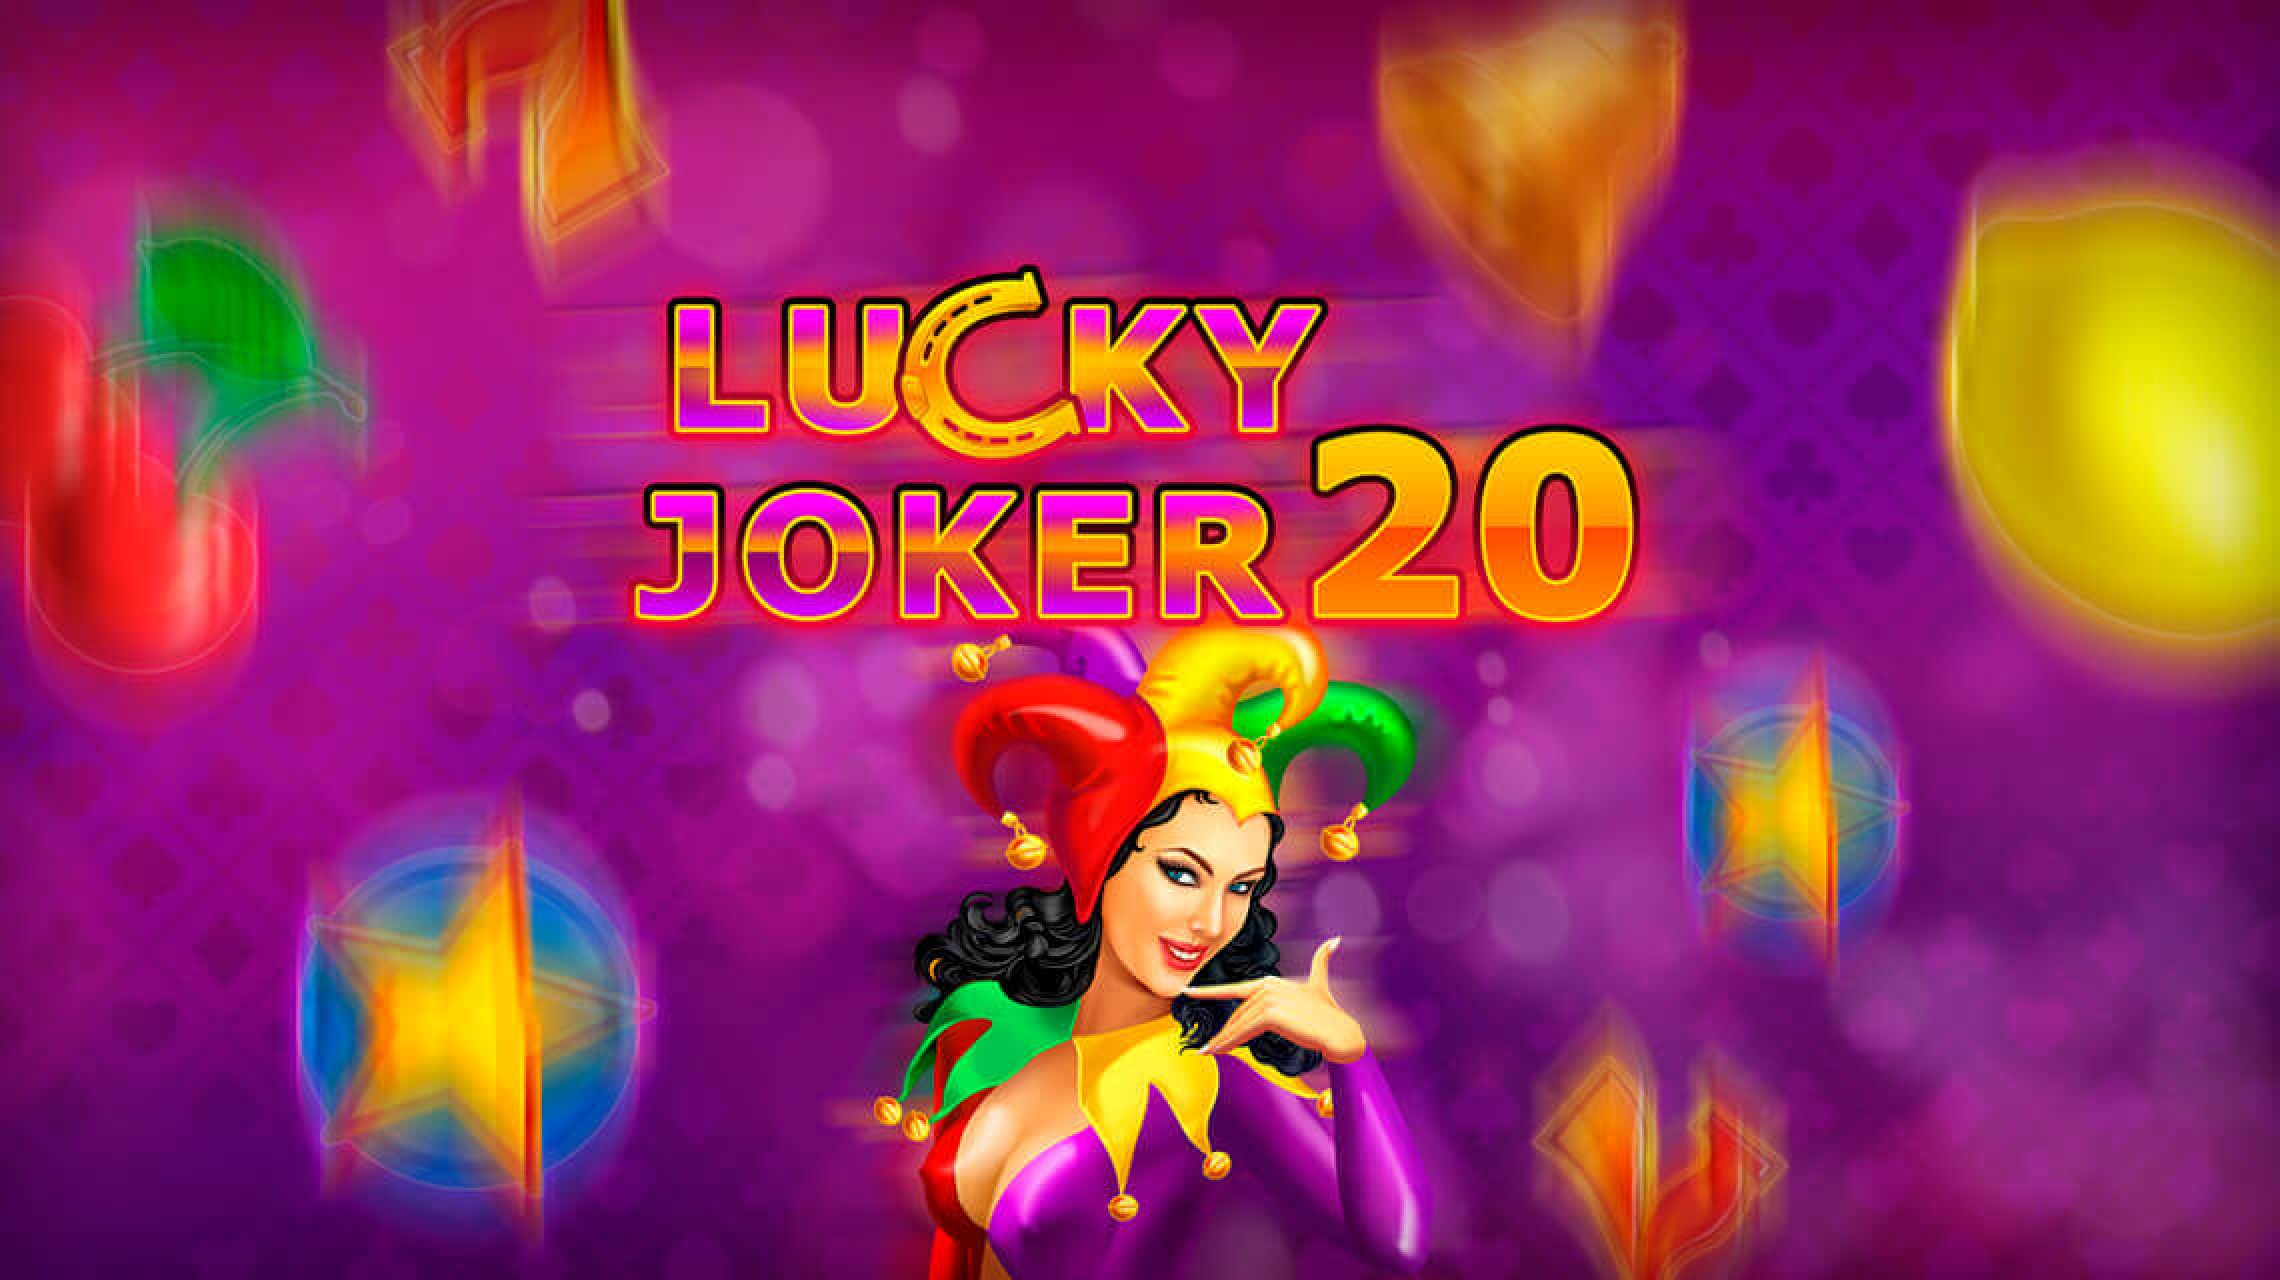 The Lucky Joker 20 Online Slot Demo Game by Amatic Industries